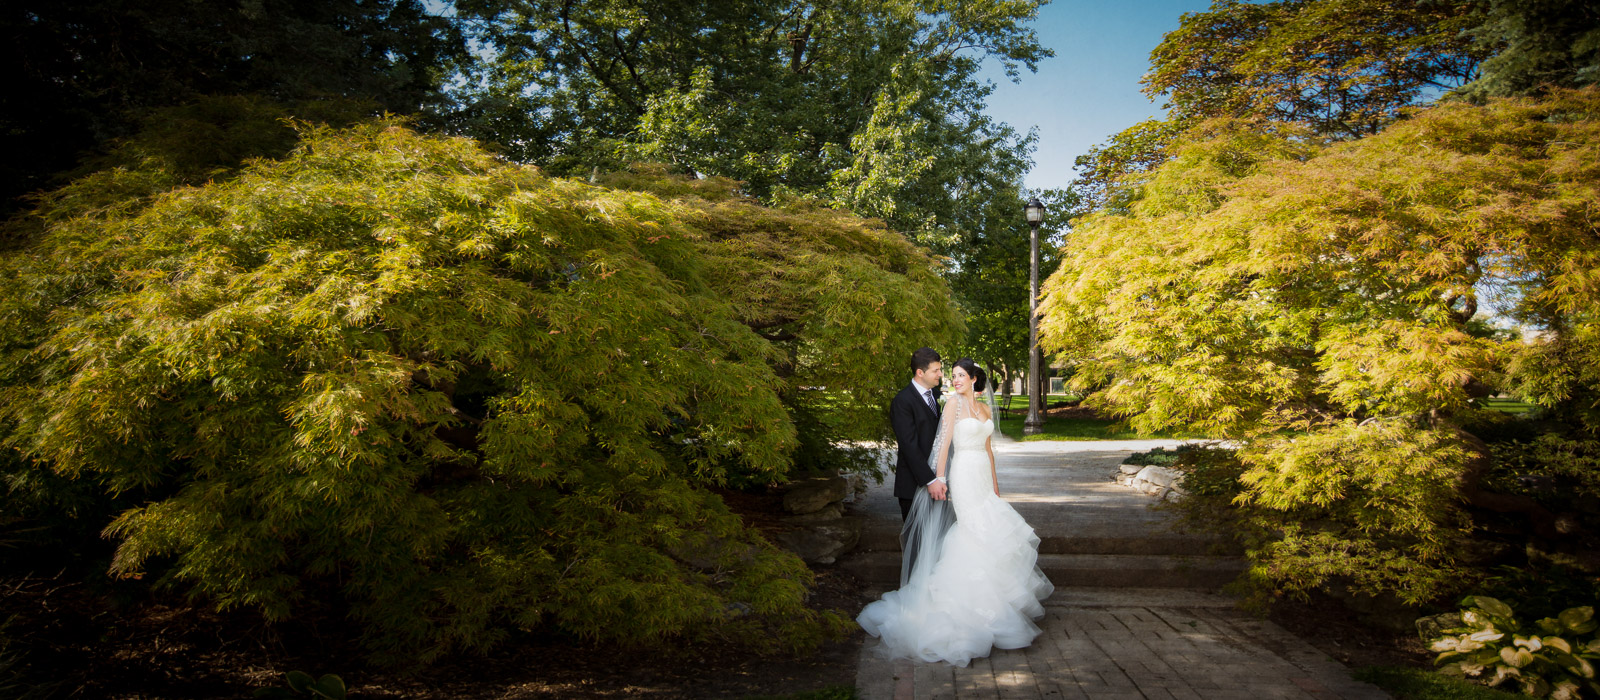 jackson park windsor wedding photographer